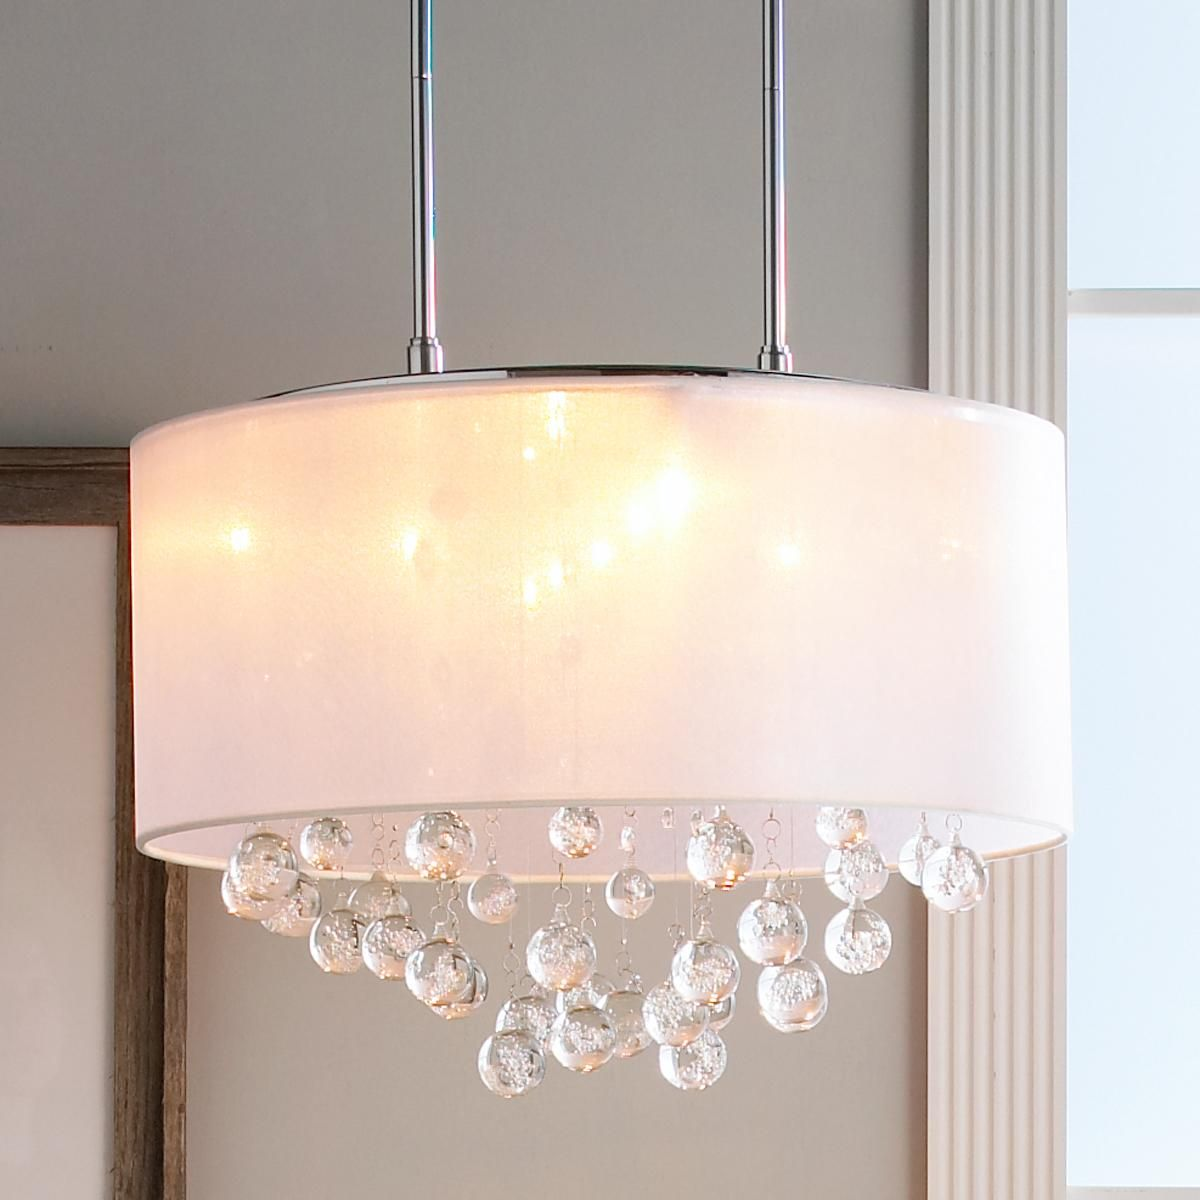 Sheer Shade Crystal Ball Chandelier Chandelier Shades Drum Shade Chandelier Lampshade Chandelier